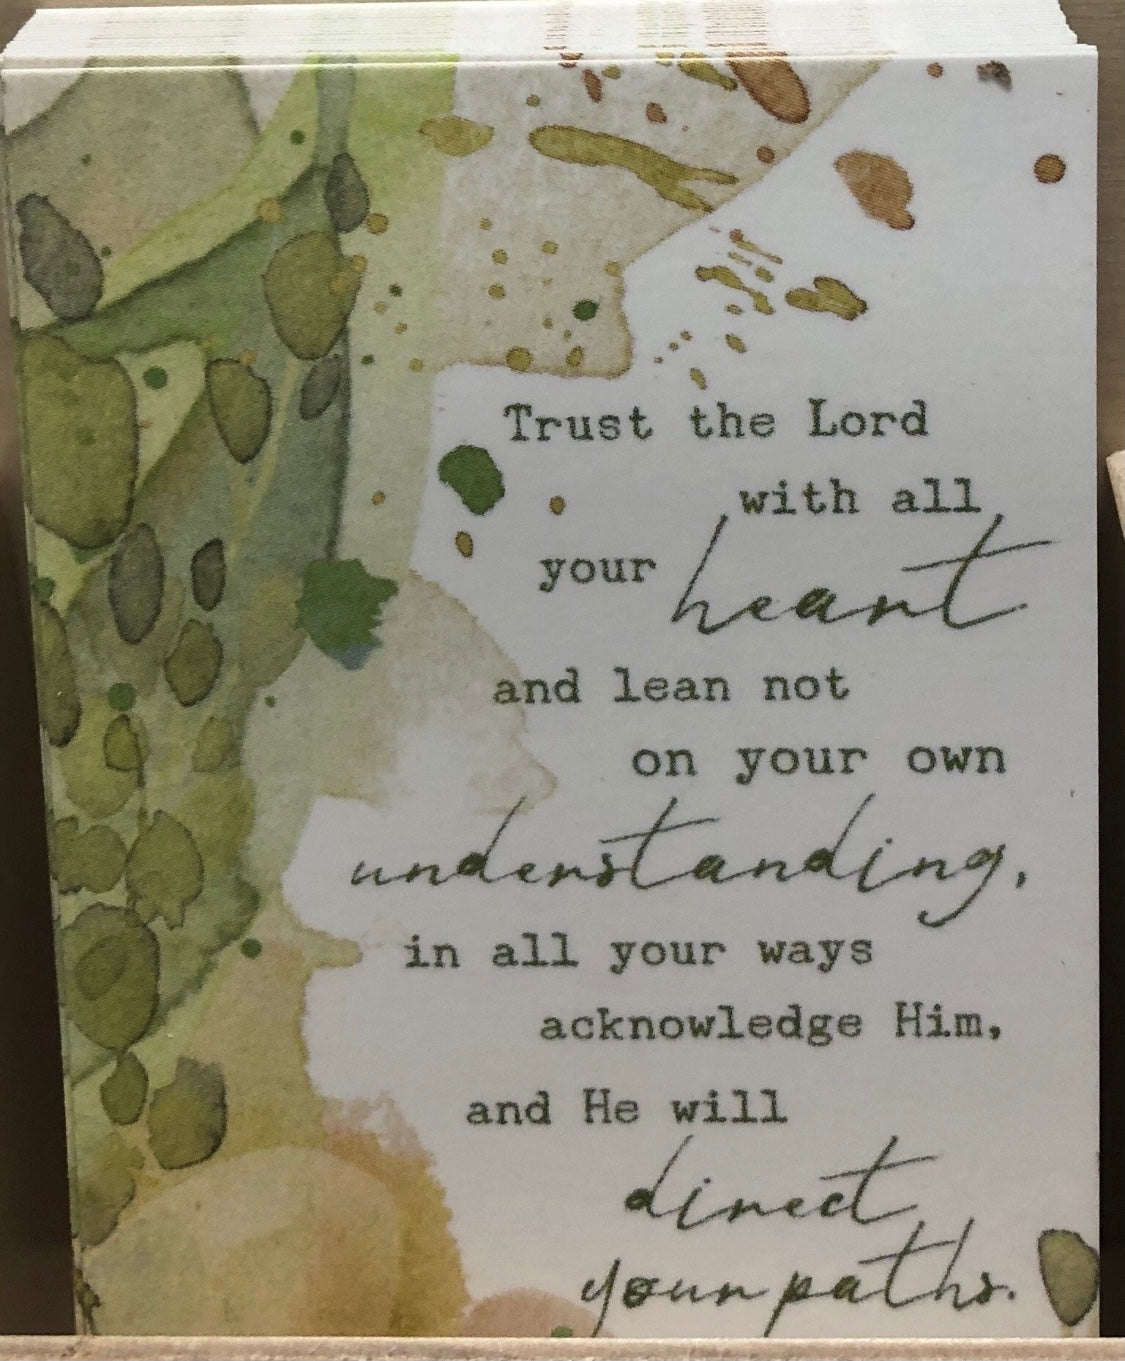 Prayer Life Share Card - Trust the Lord